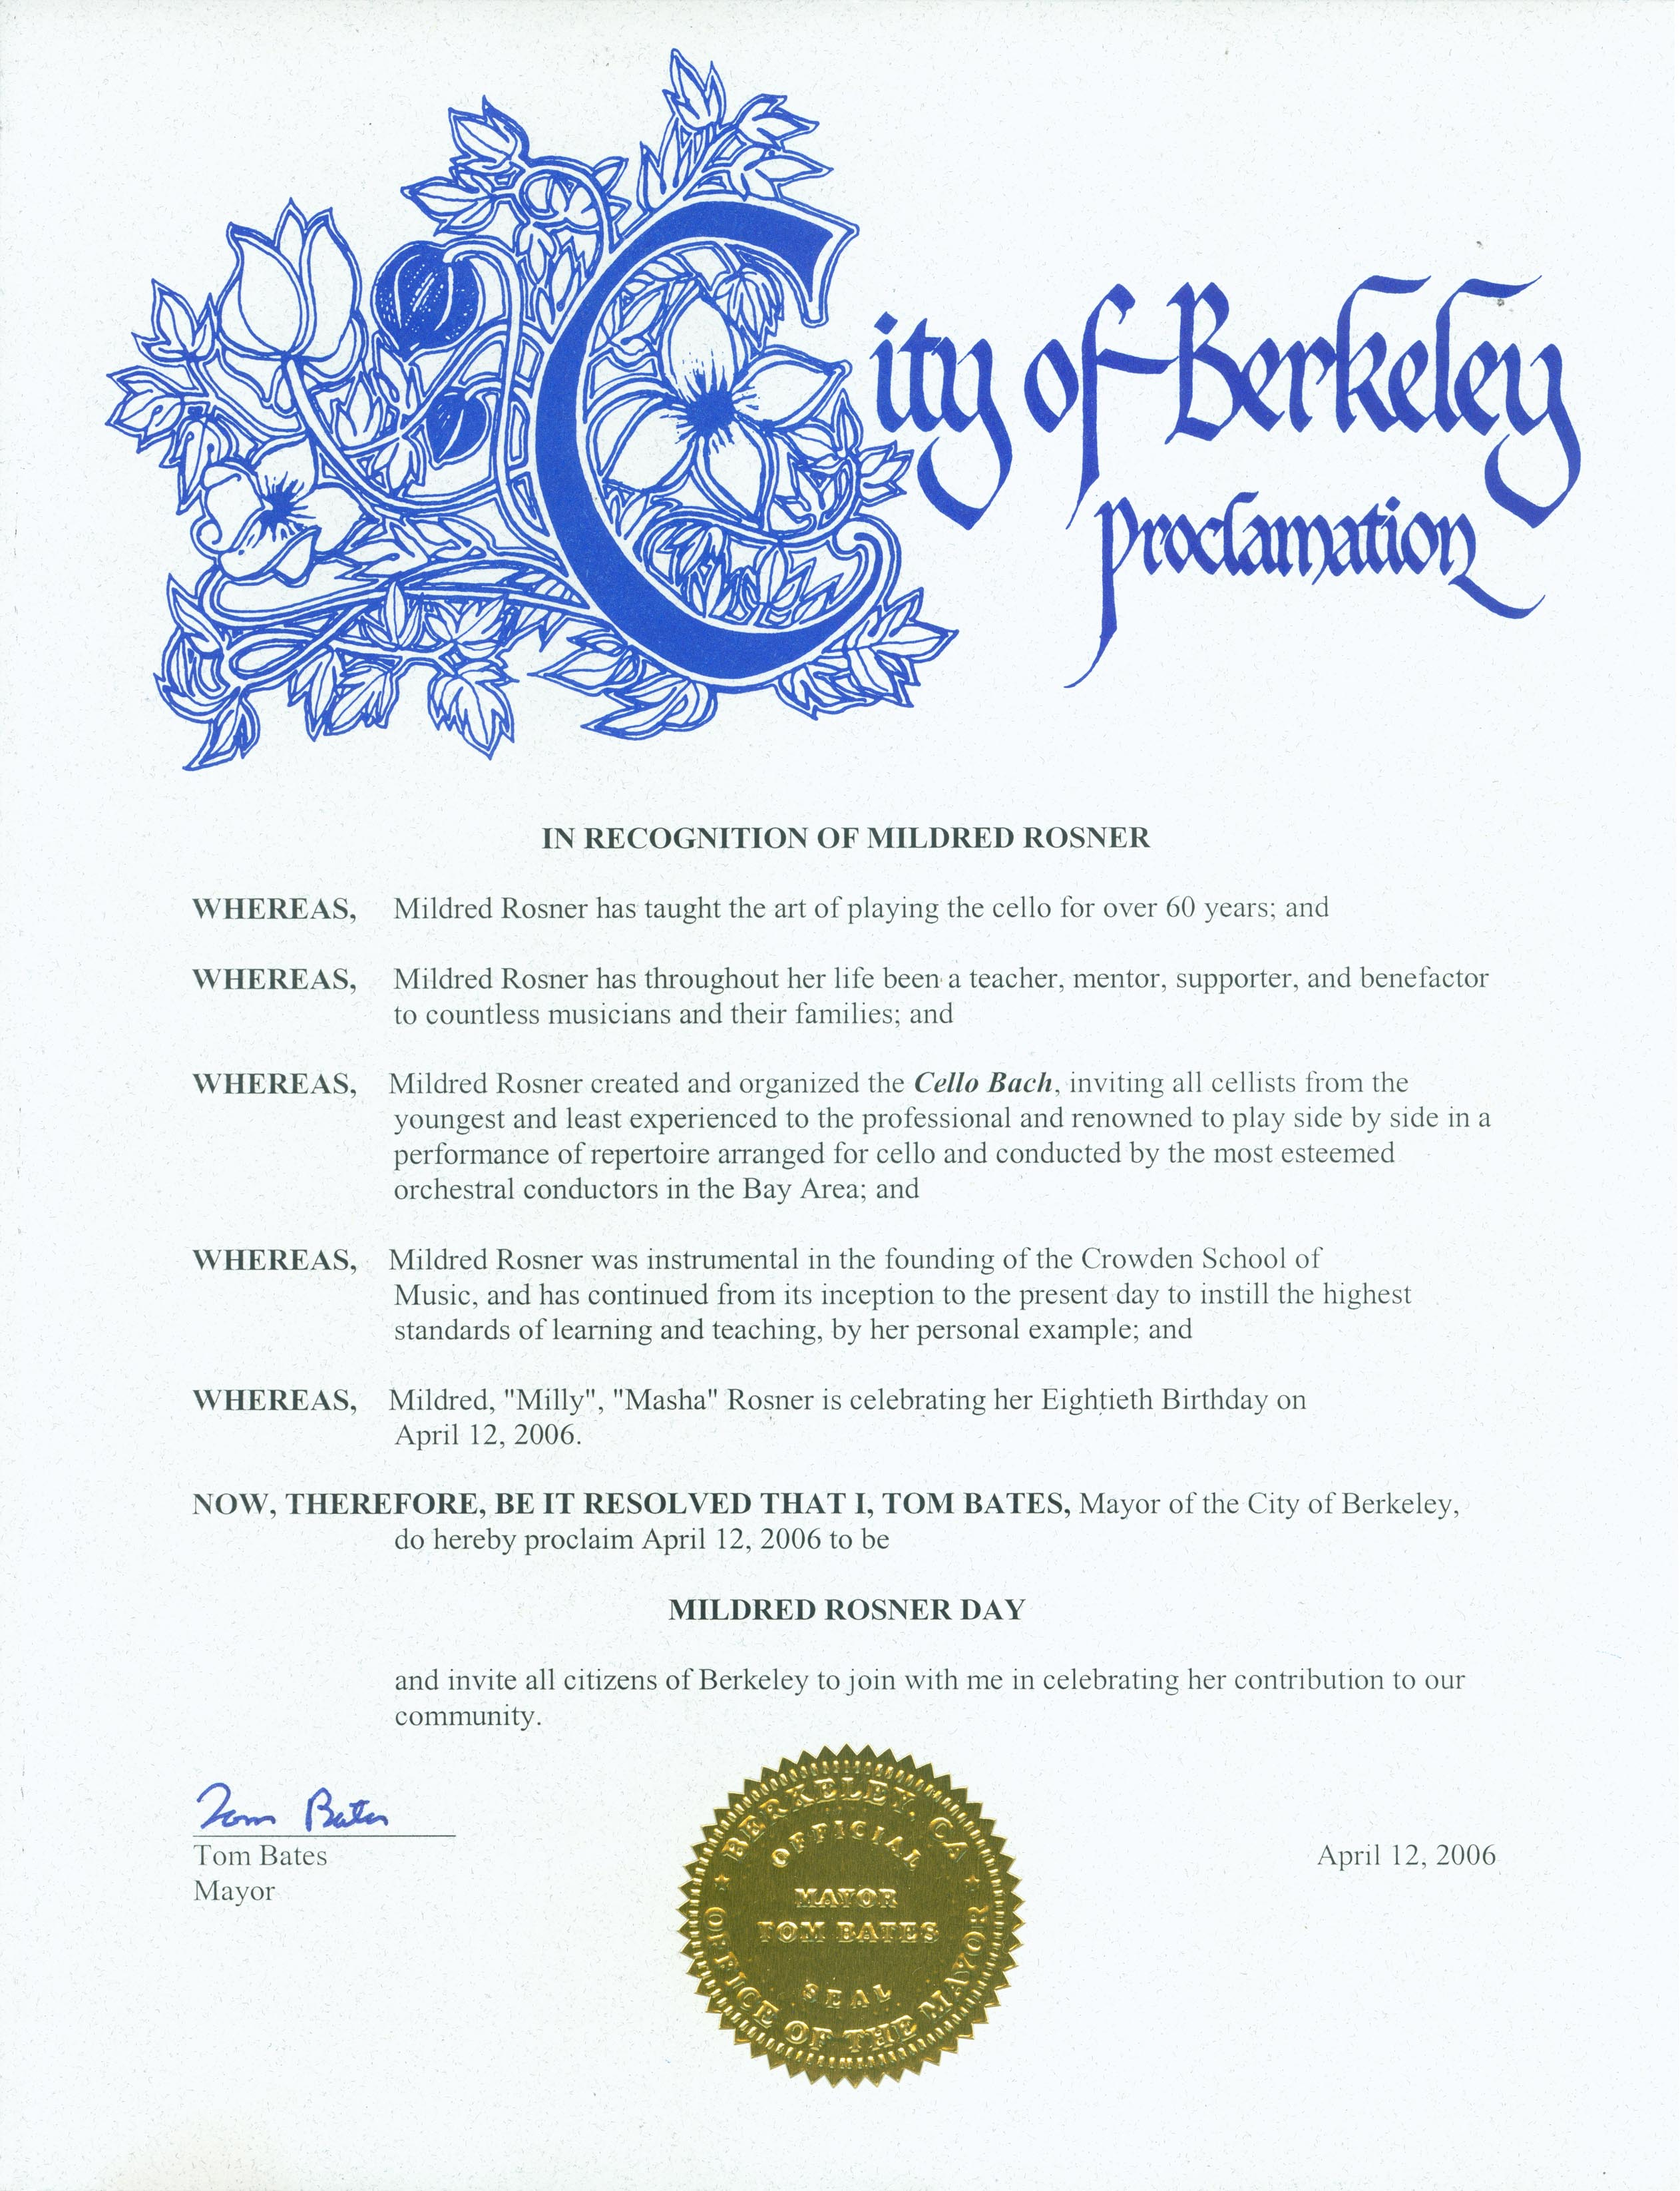 2006 City of Berkeley Proclamation